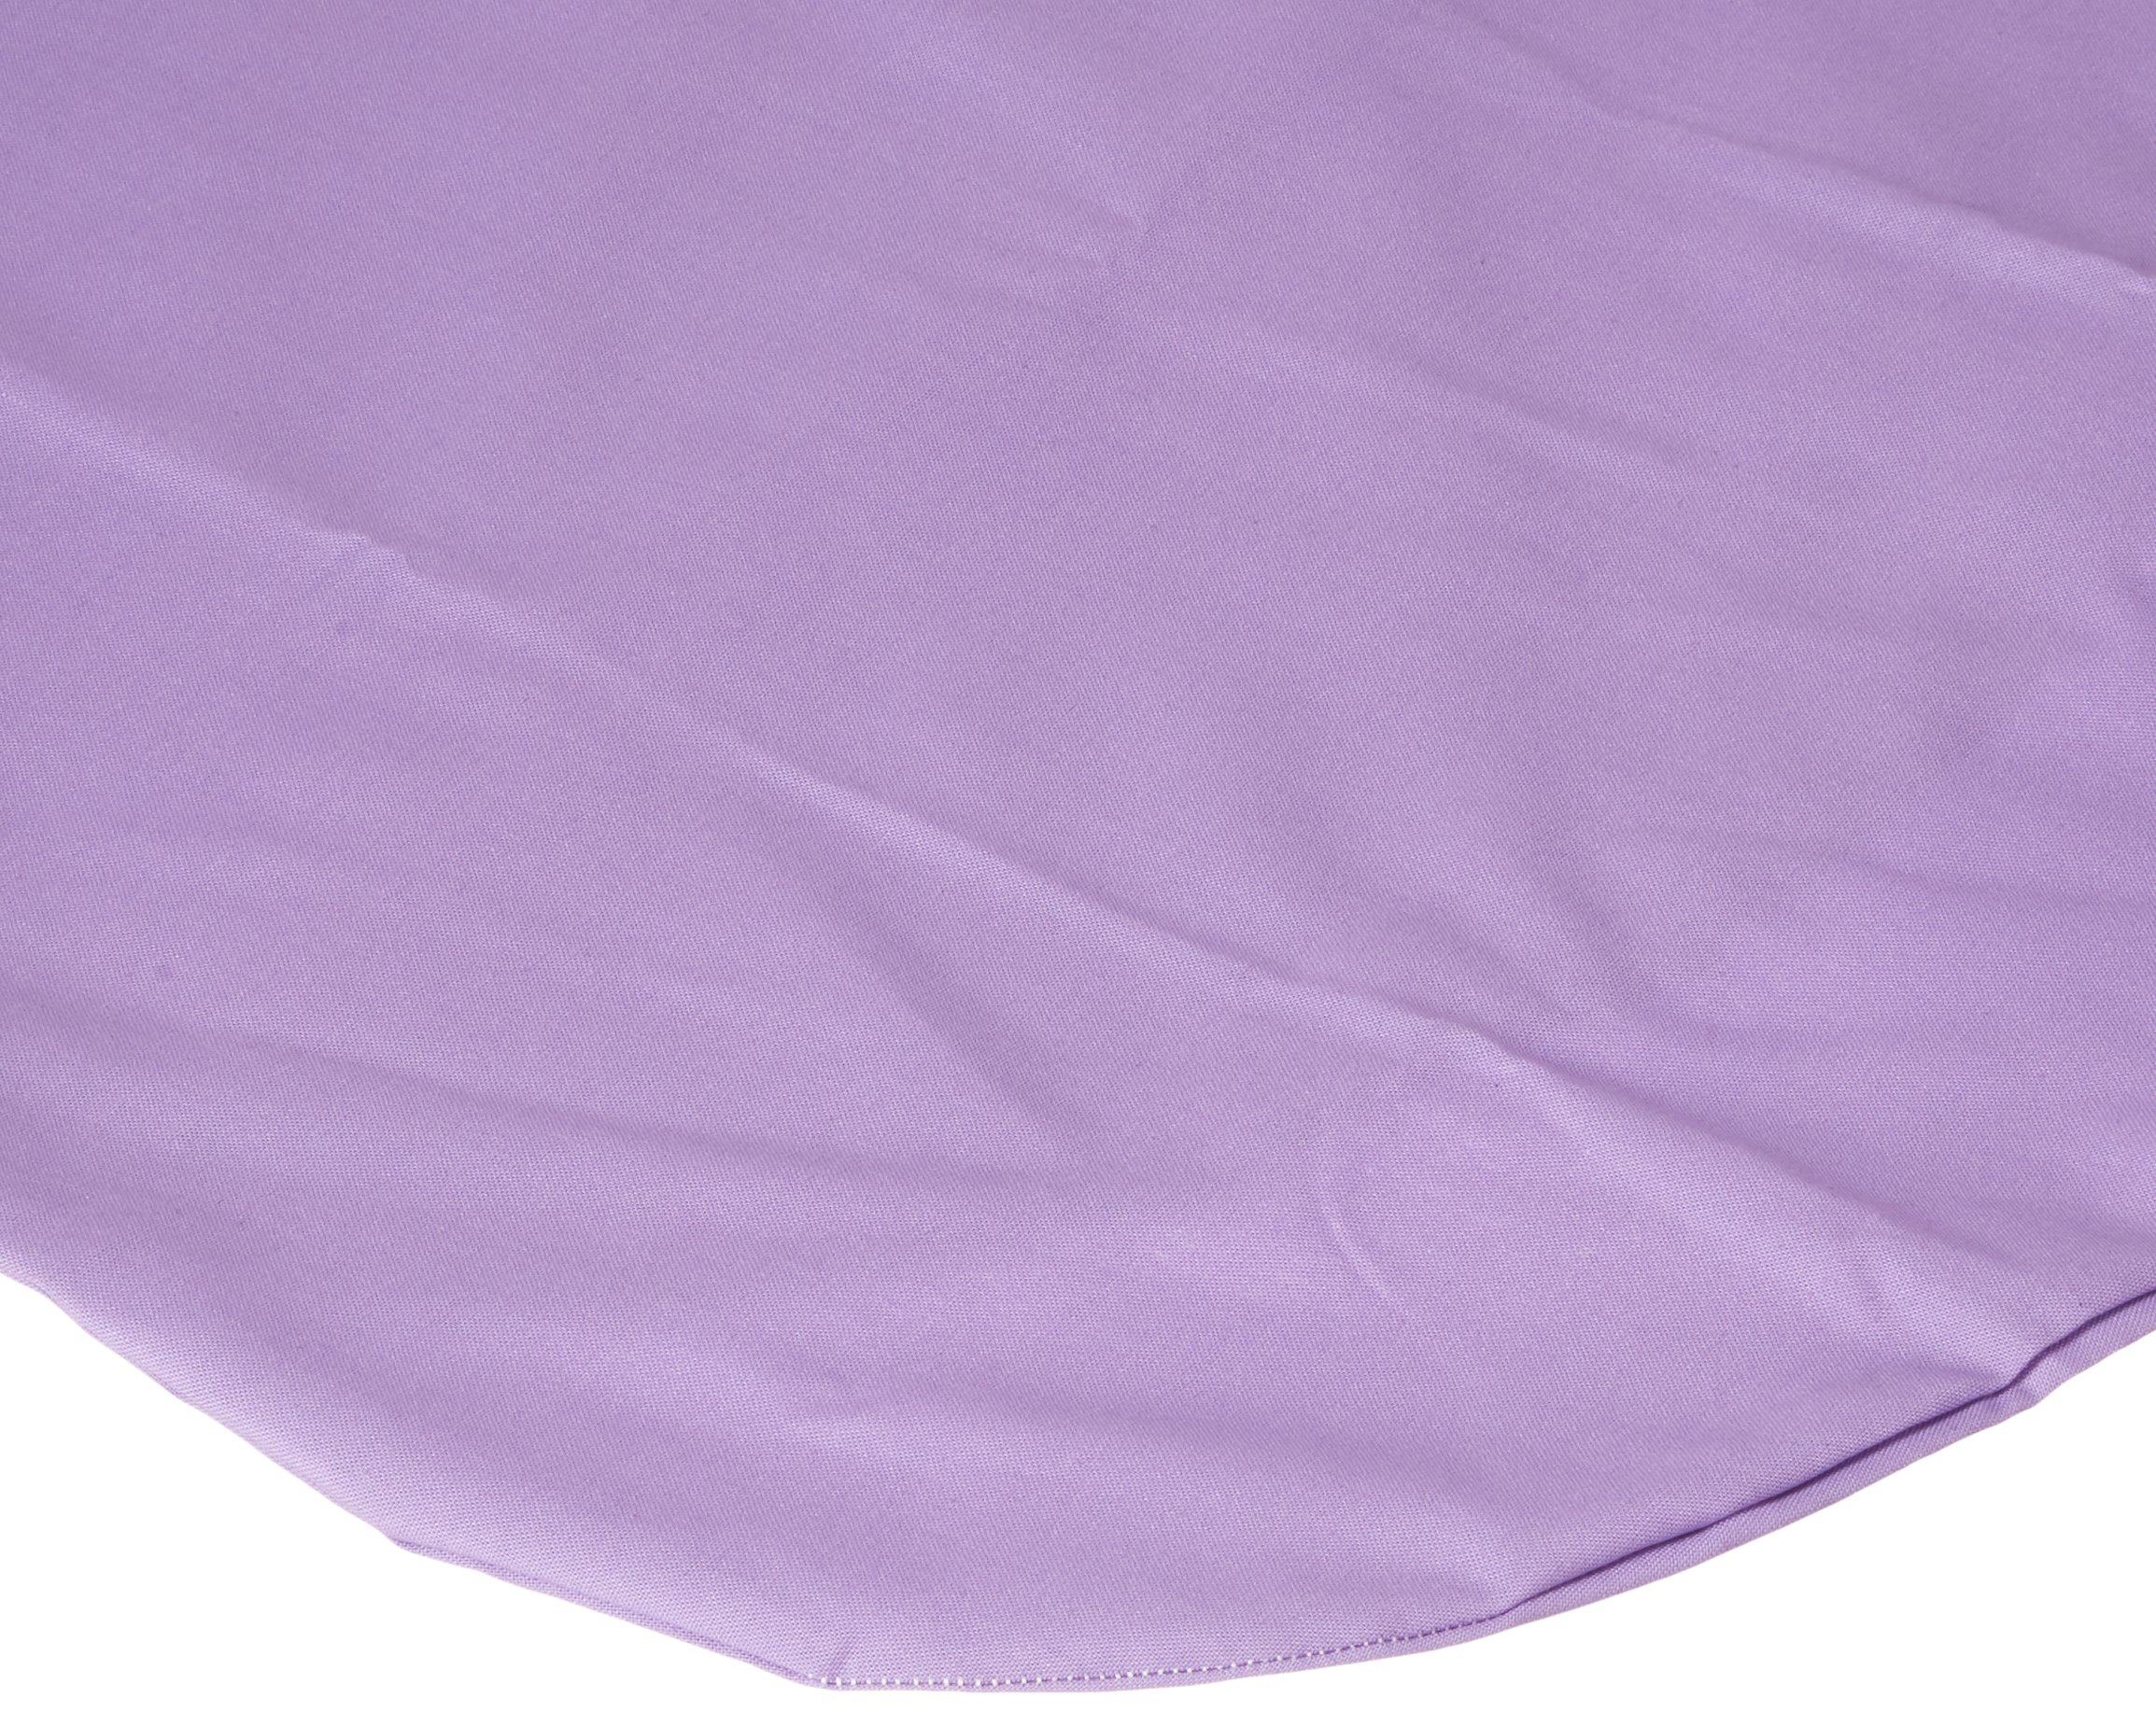 SheetWorld Fitted Bassinet Sheet (Fits Halo Bassinet Swivel Sleeper) - Solid Lilac Woven - Made In USA